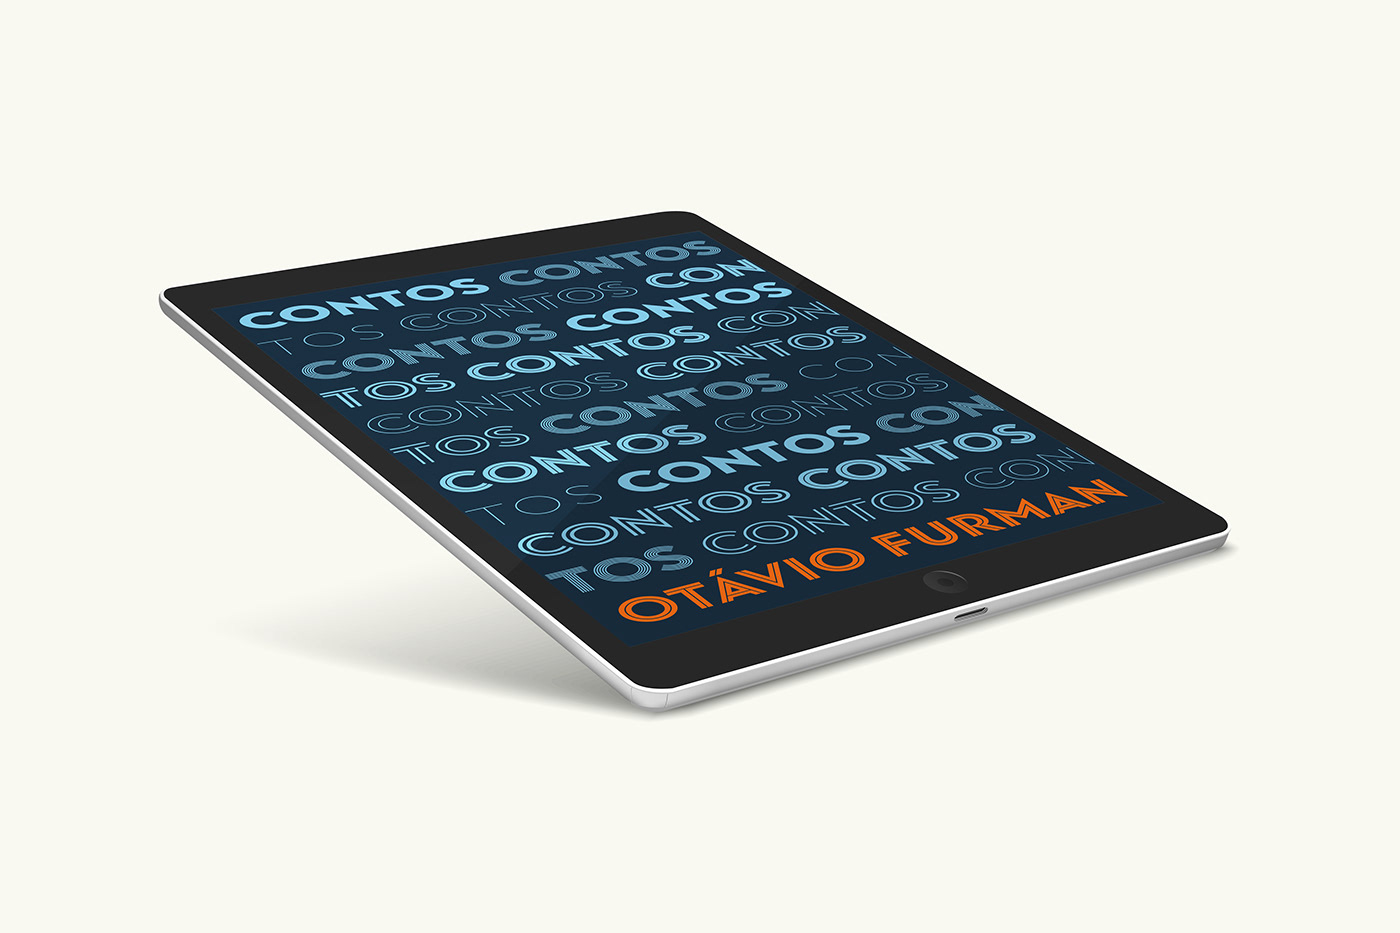 Book cover displayed on tablet device.